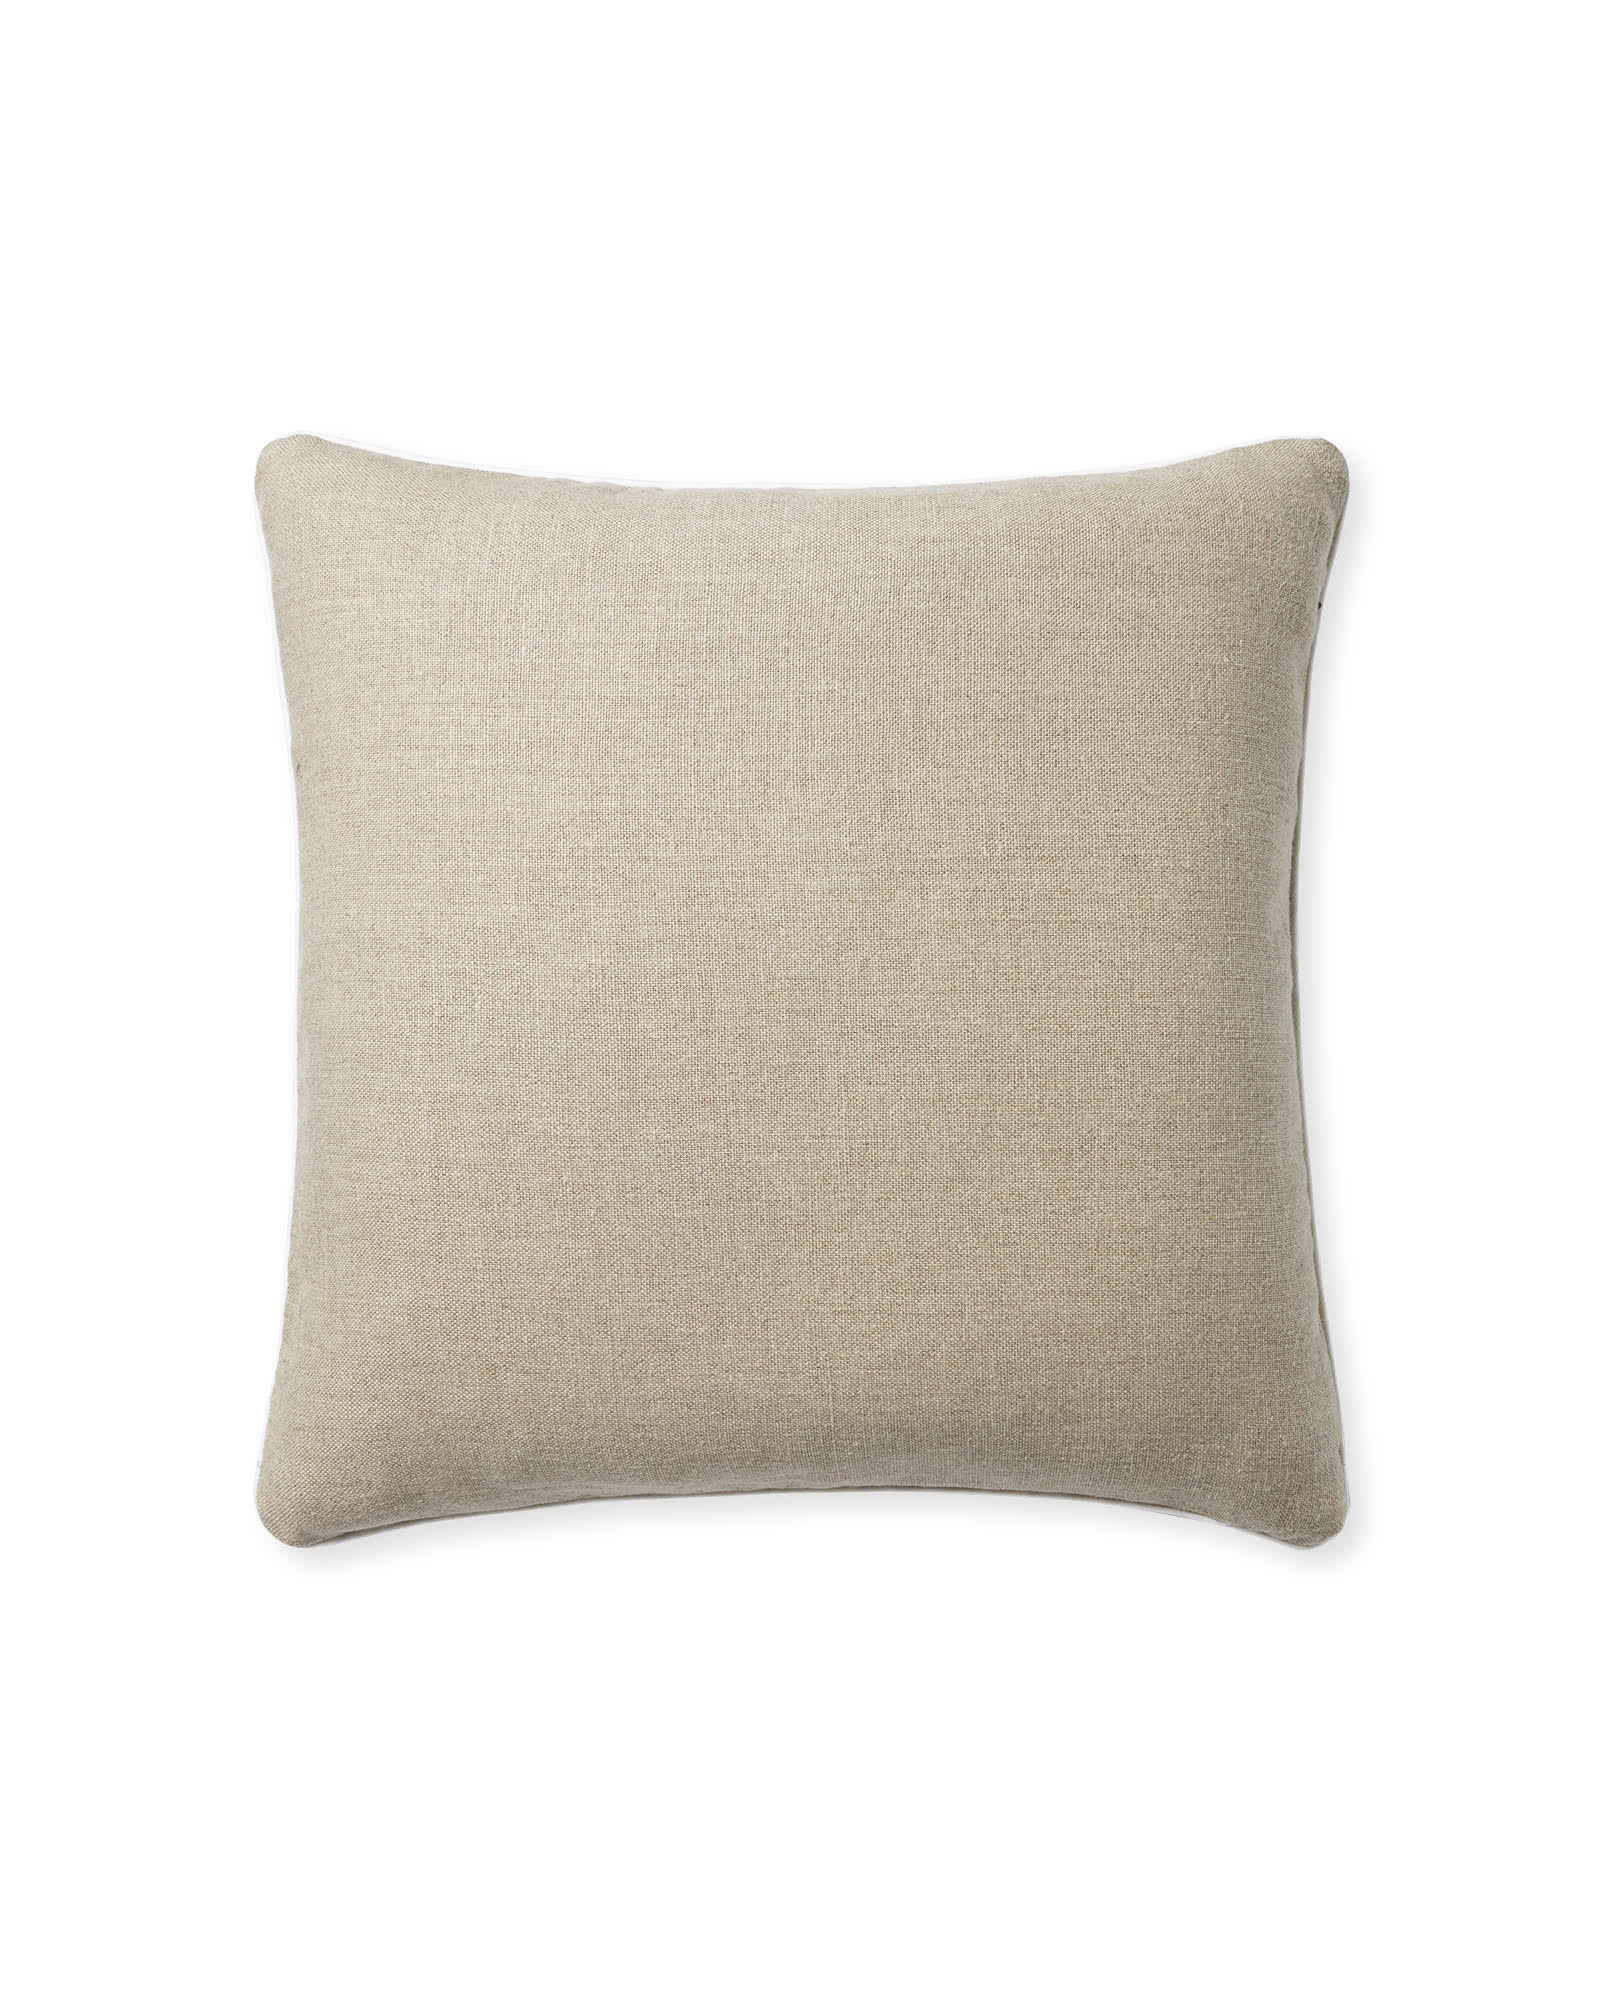 Suede Pillow Cover